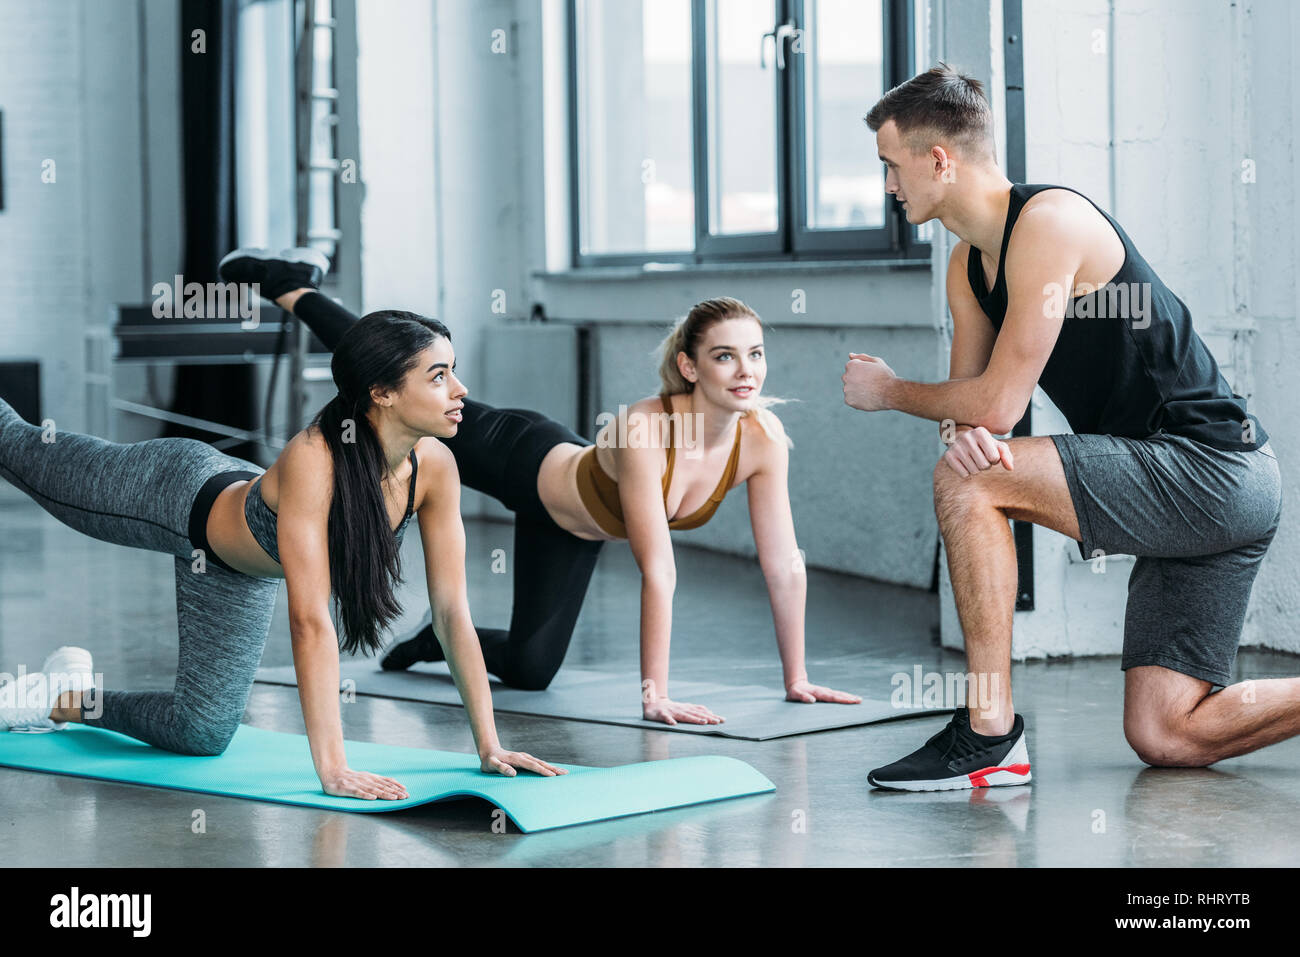 handsome male trainer looking at athletic multiethnic girls in sportswear exercising on yoga mats in gym - Stock Image